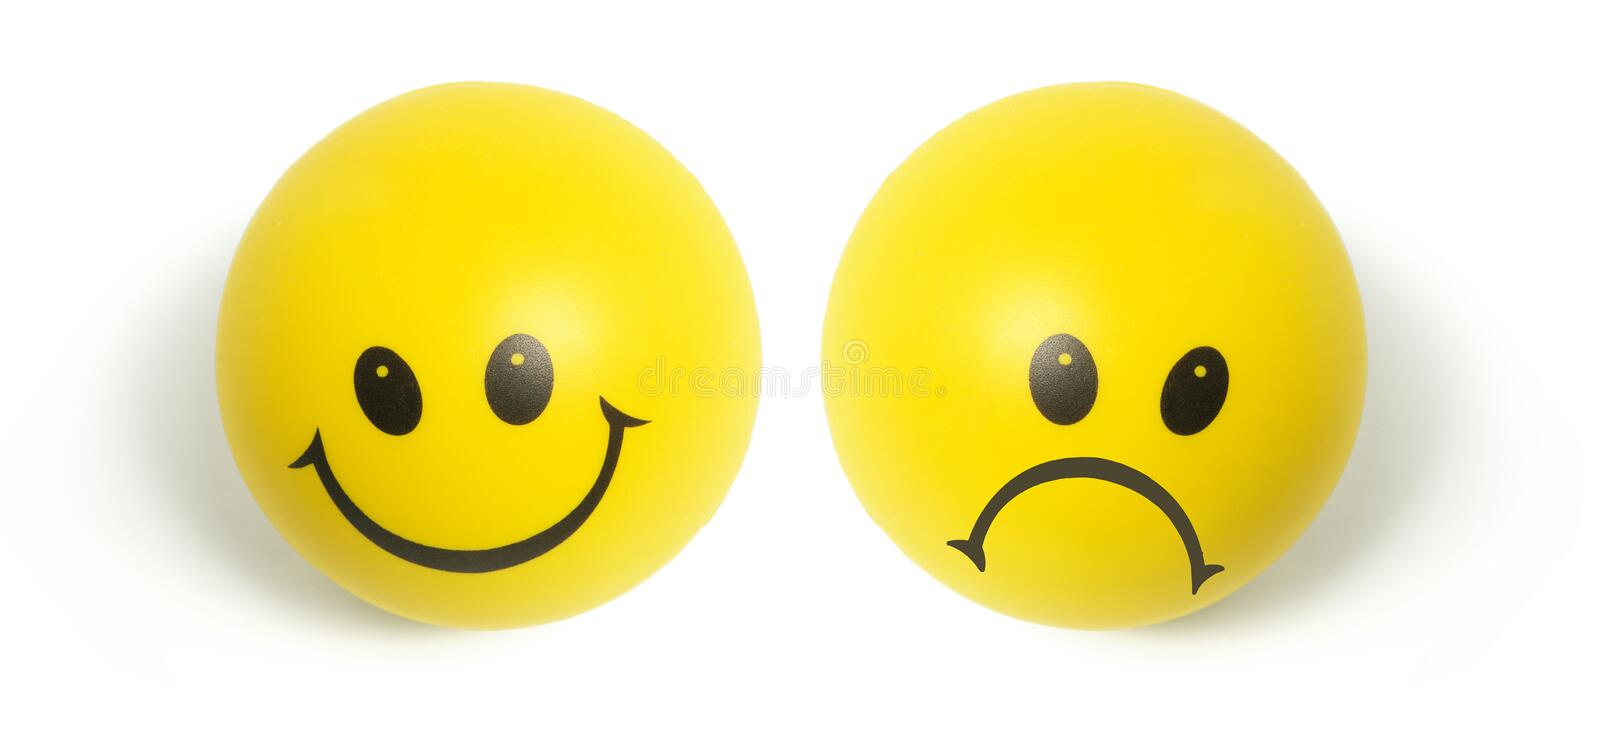 Smiley Balls royalty free stock images